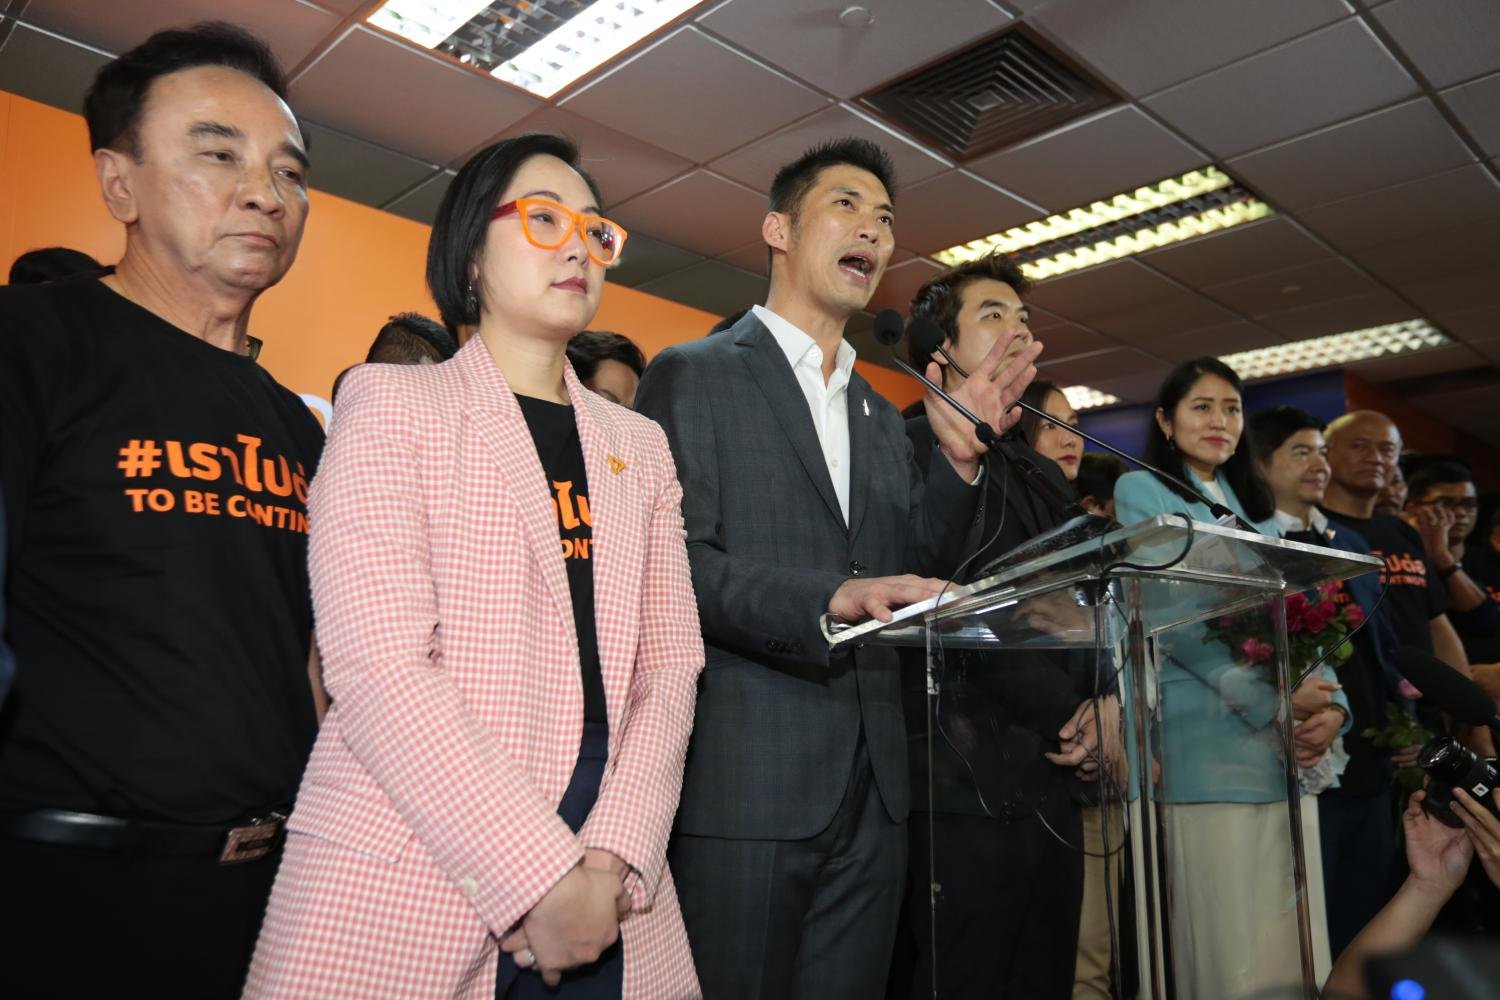 Thanathorn Juangroongruangkit (third from left) leader of the disbanded Future Forward Party, addresses supporters following the Constitutional Court's ruling which also bans the party's executives from politics for 10 years.(Photos by Chanat Katanyu)